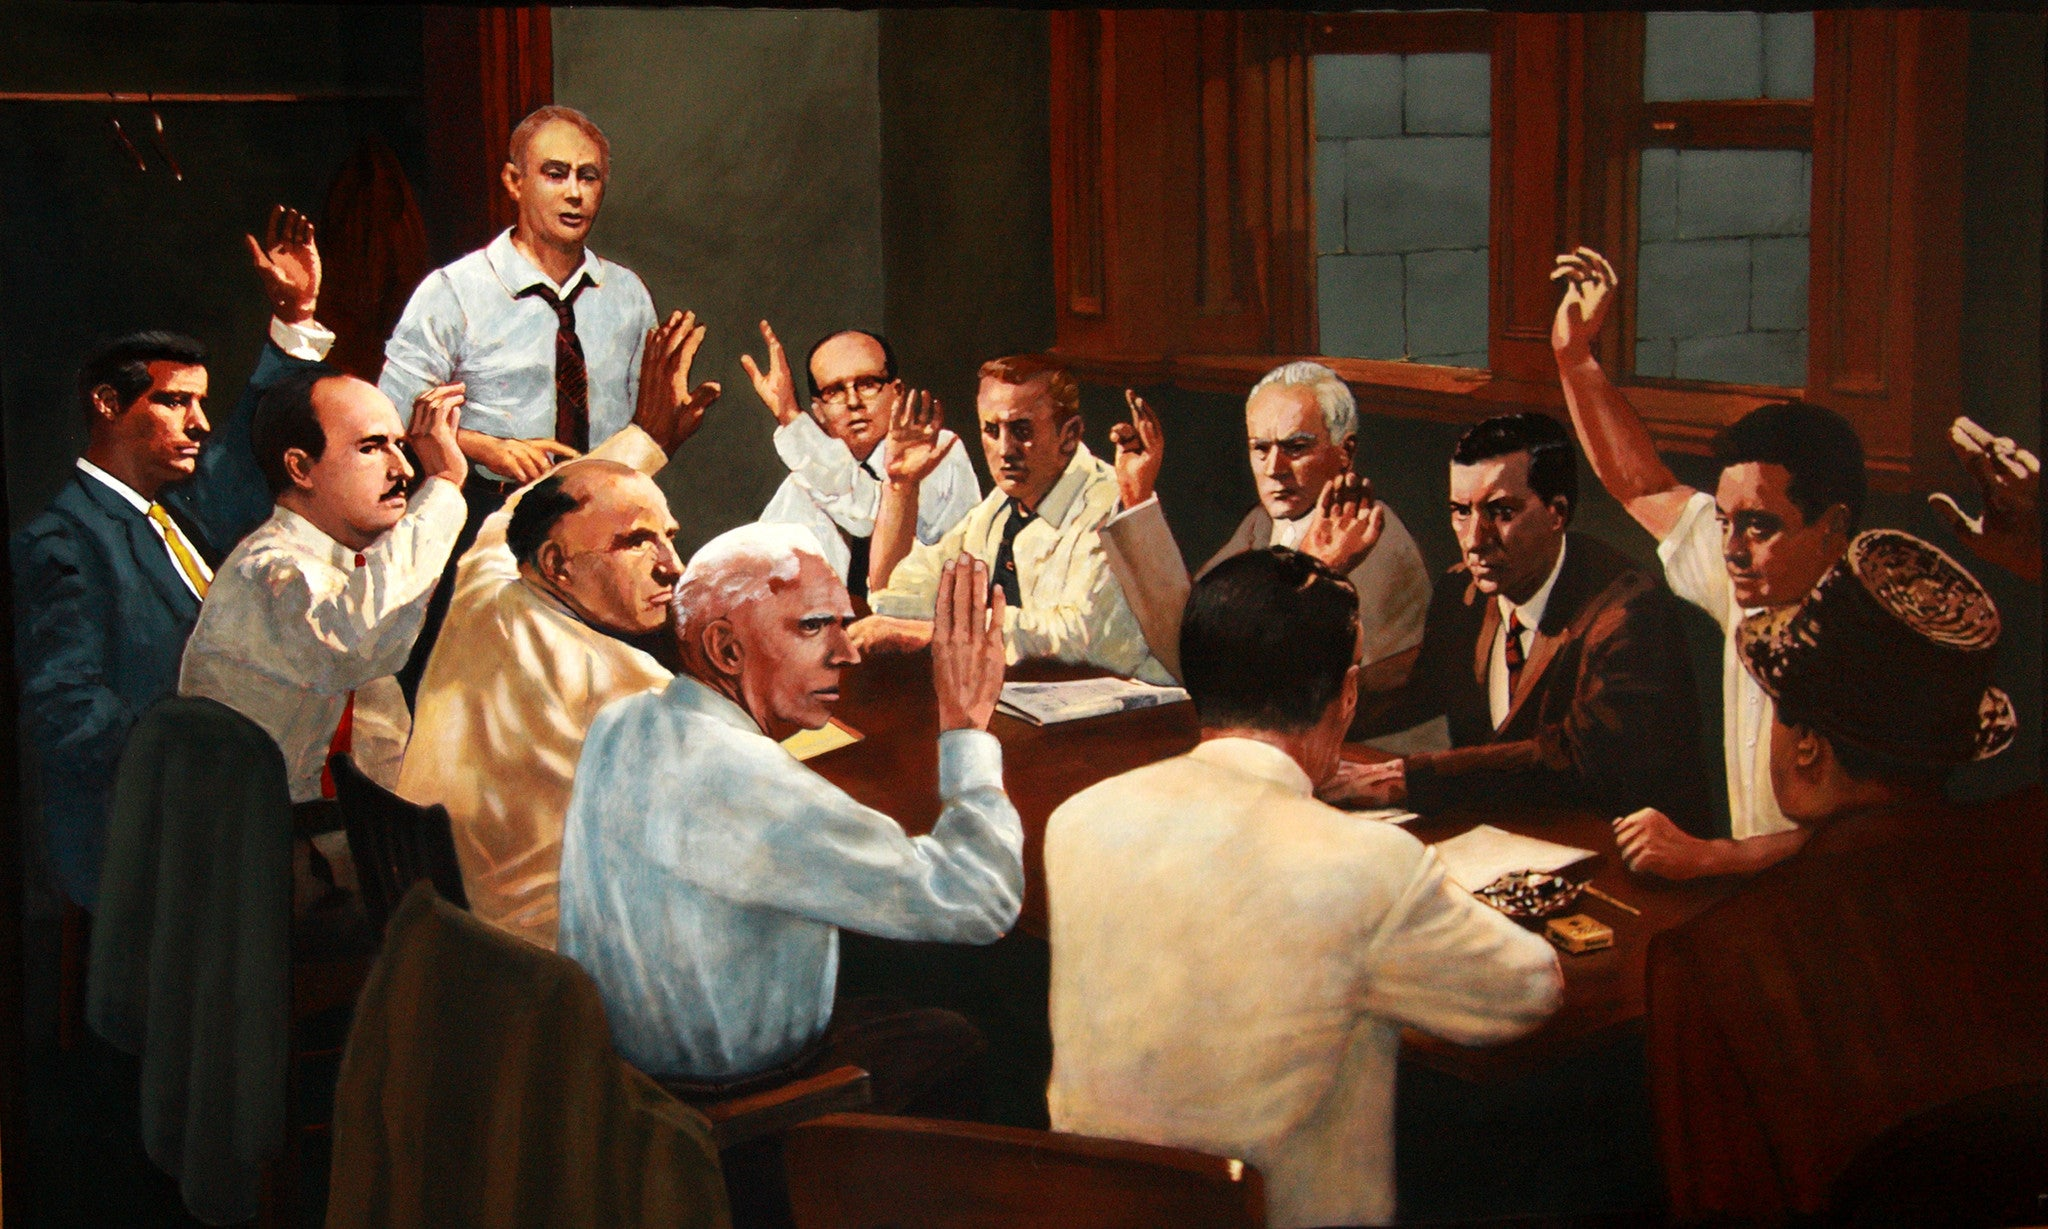 Lone Hold Out Juror by artist Trevor Goring